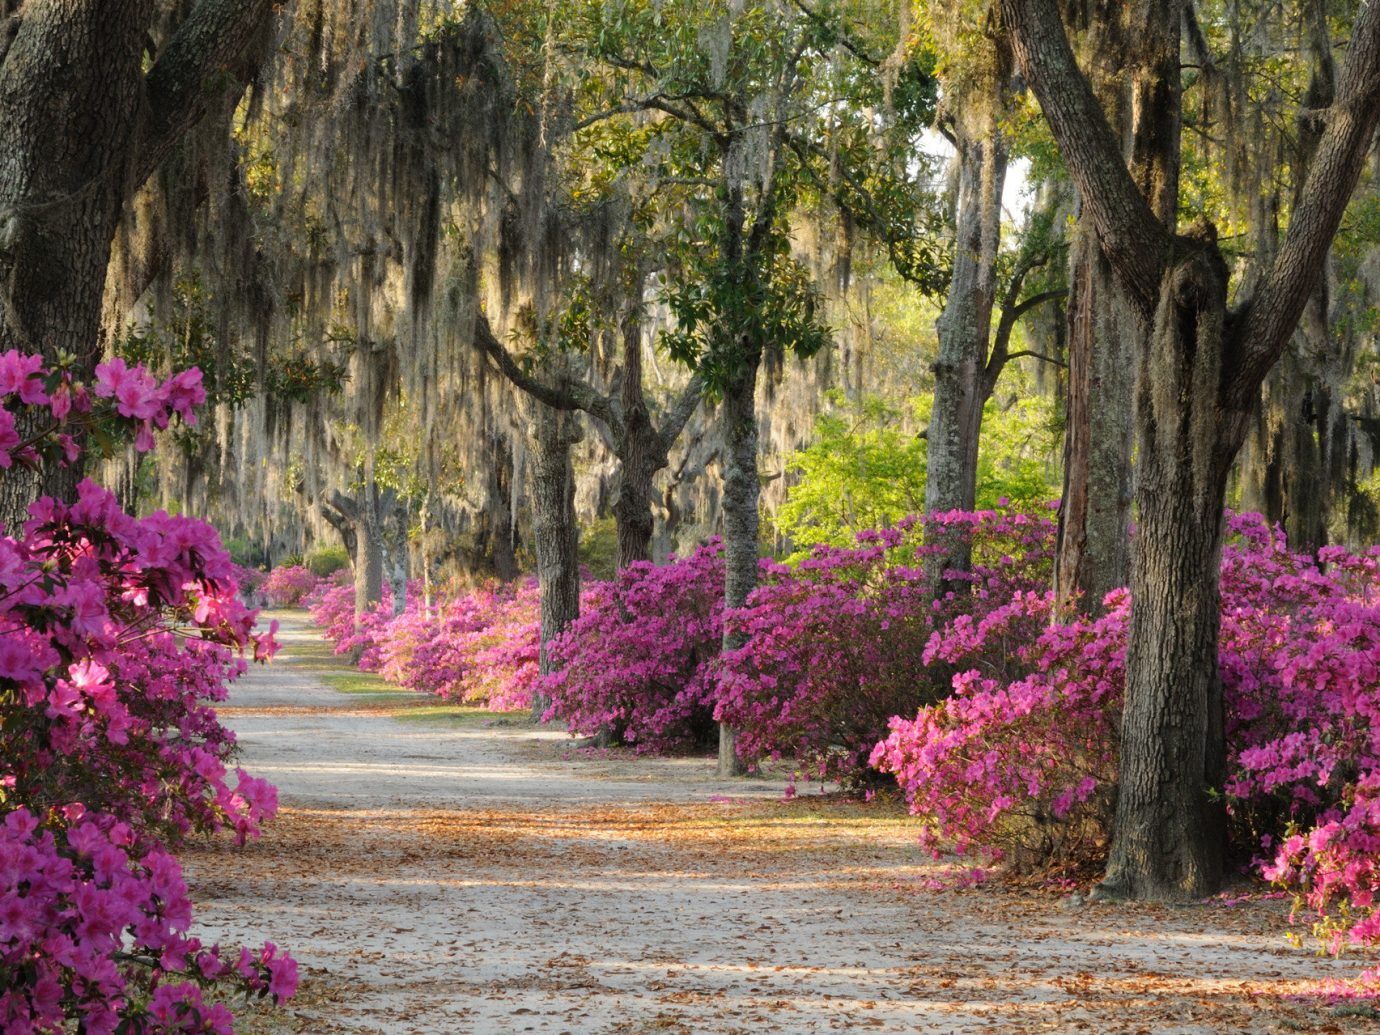 Road Trips tree outdoor plant flower flora pink botany Garden park season woodland woody plant leaf land plant autumn blossom shrub purple landscape botanical garden flowering plant lawn surrounded Forest